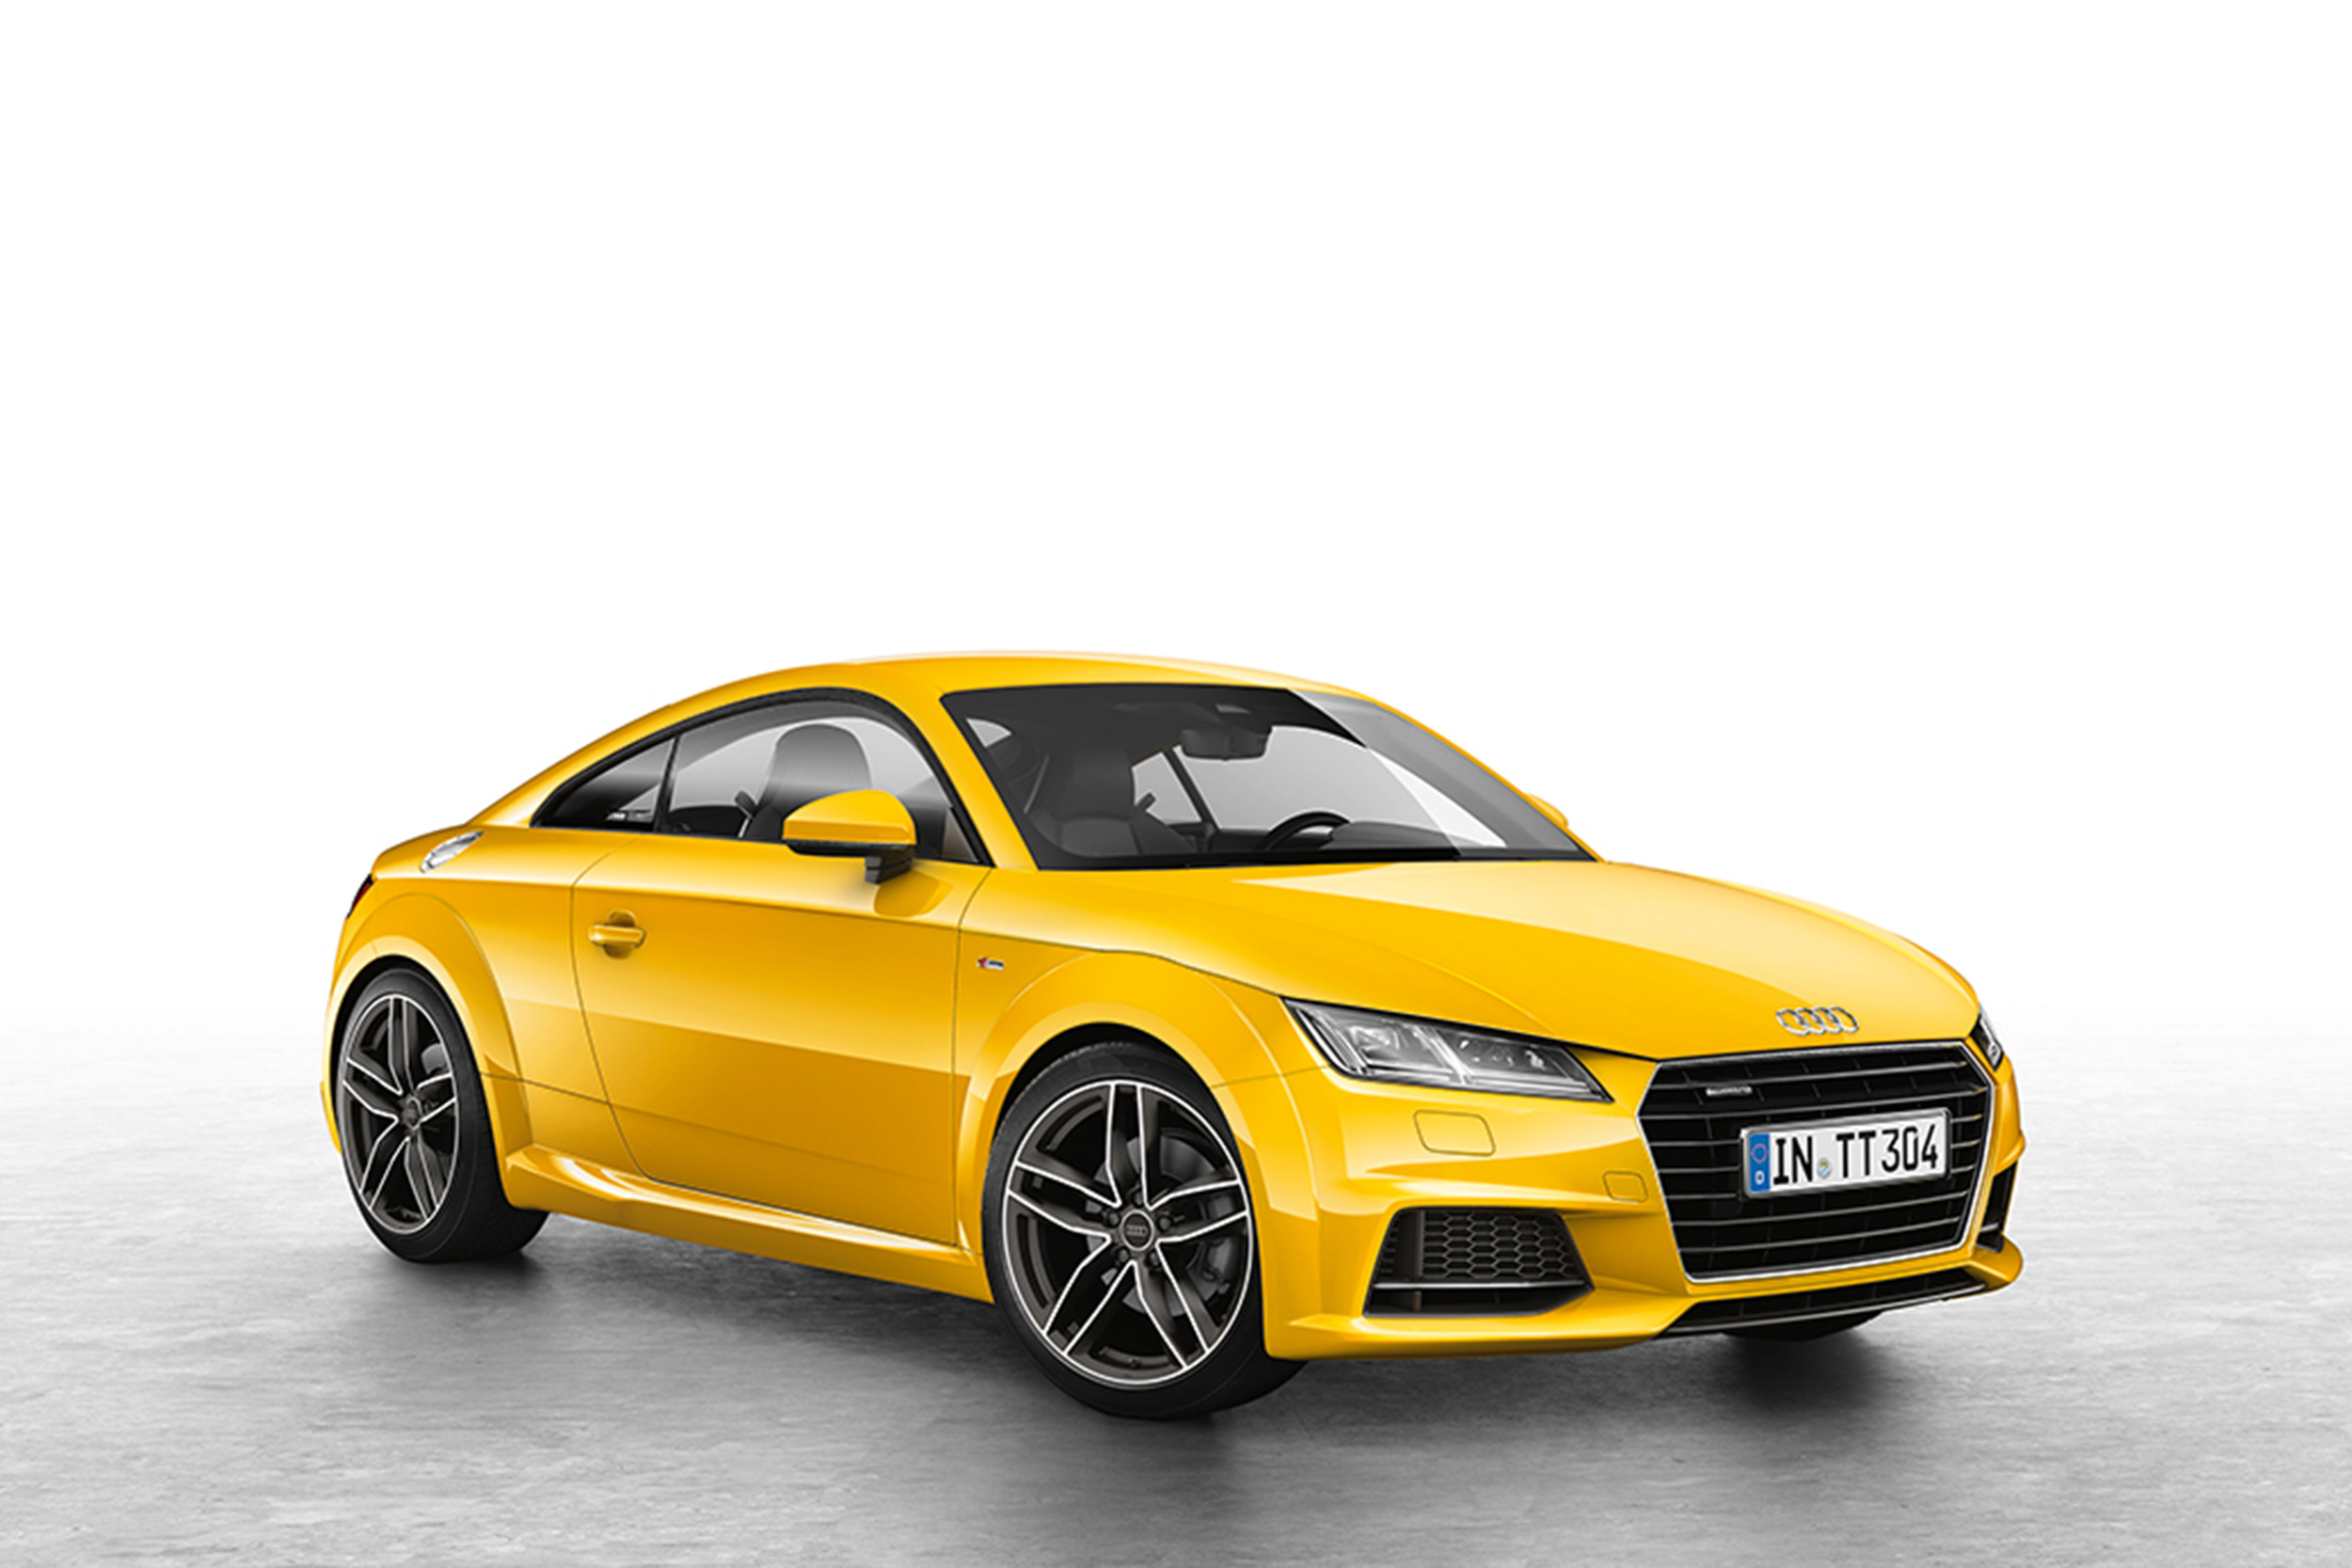 Audi TT COUPE 2018 - International Price & Overview